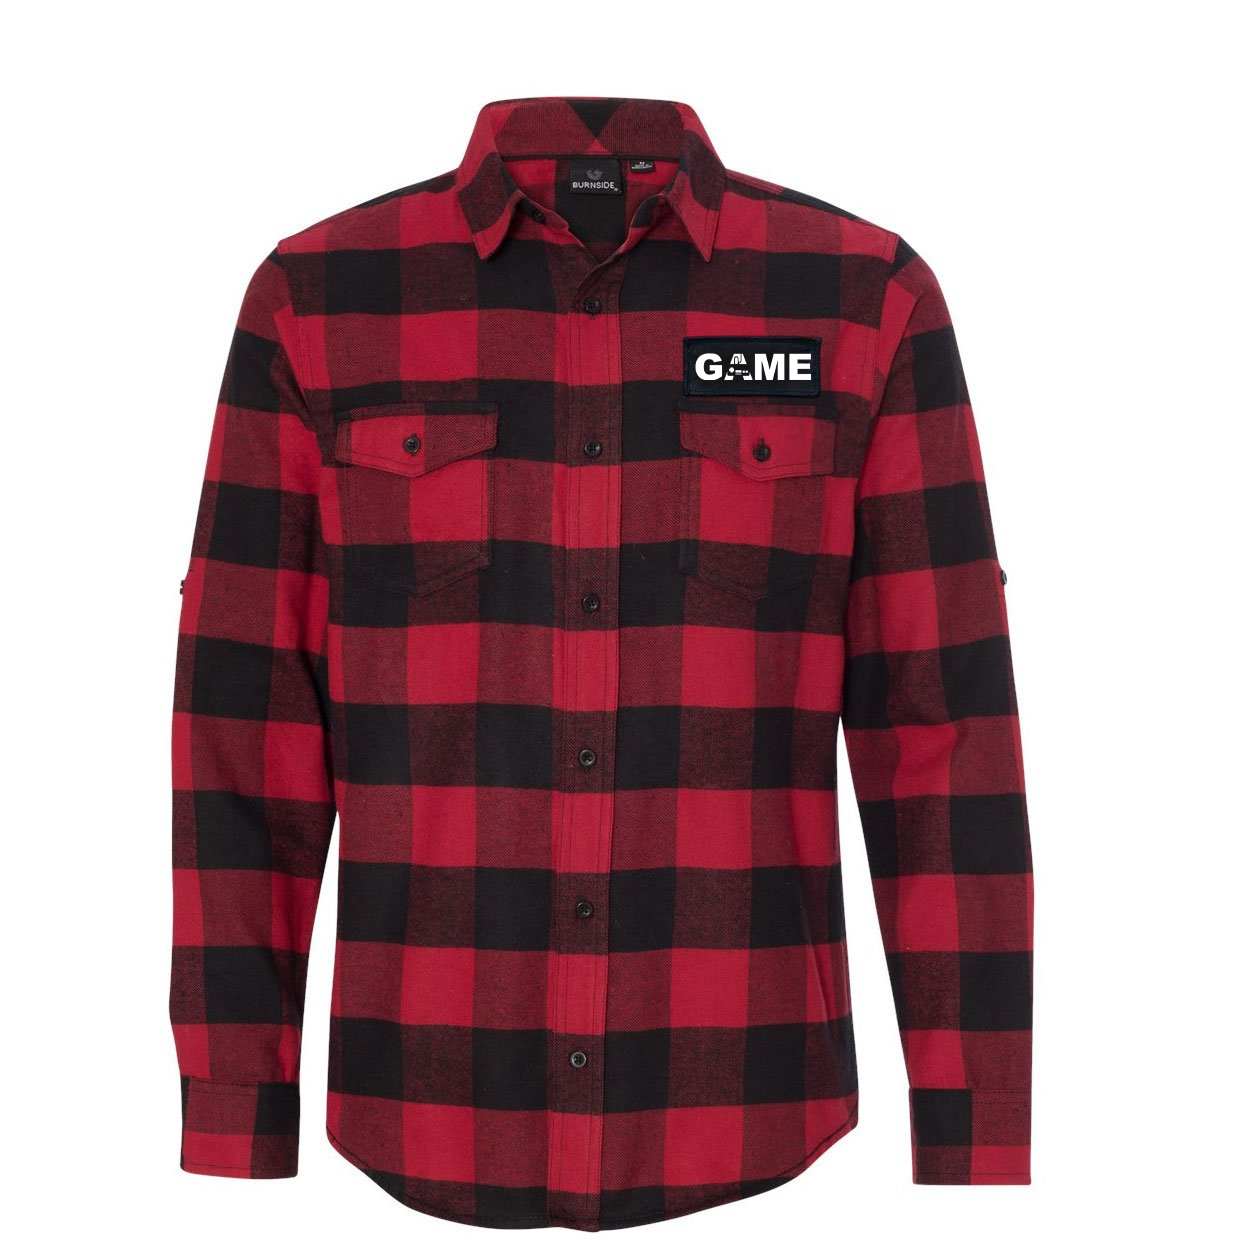 Game Controller Logo Classic Unisex Long Sleeve Woven Patch Flannel Shirt Red/Black Buffalo (White Logo)